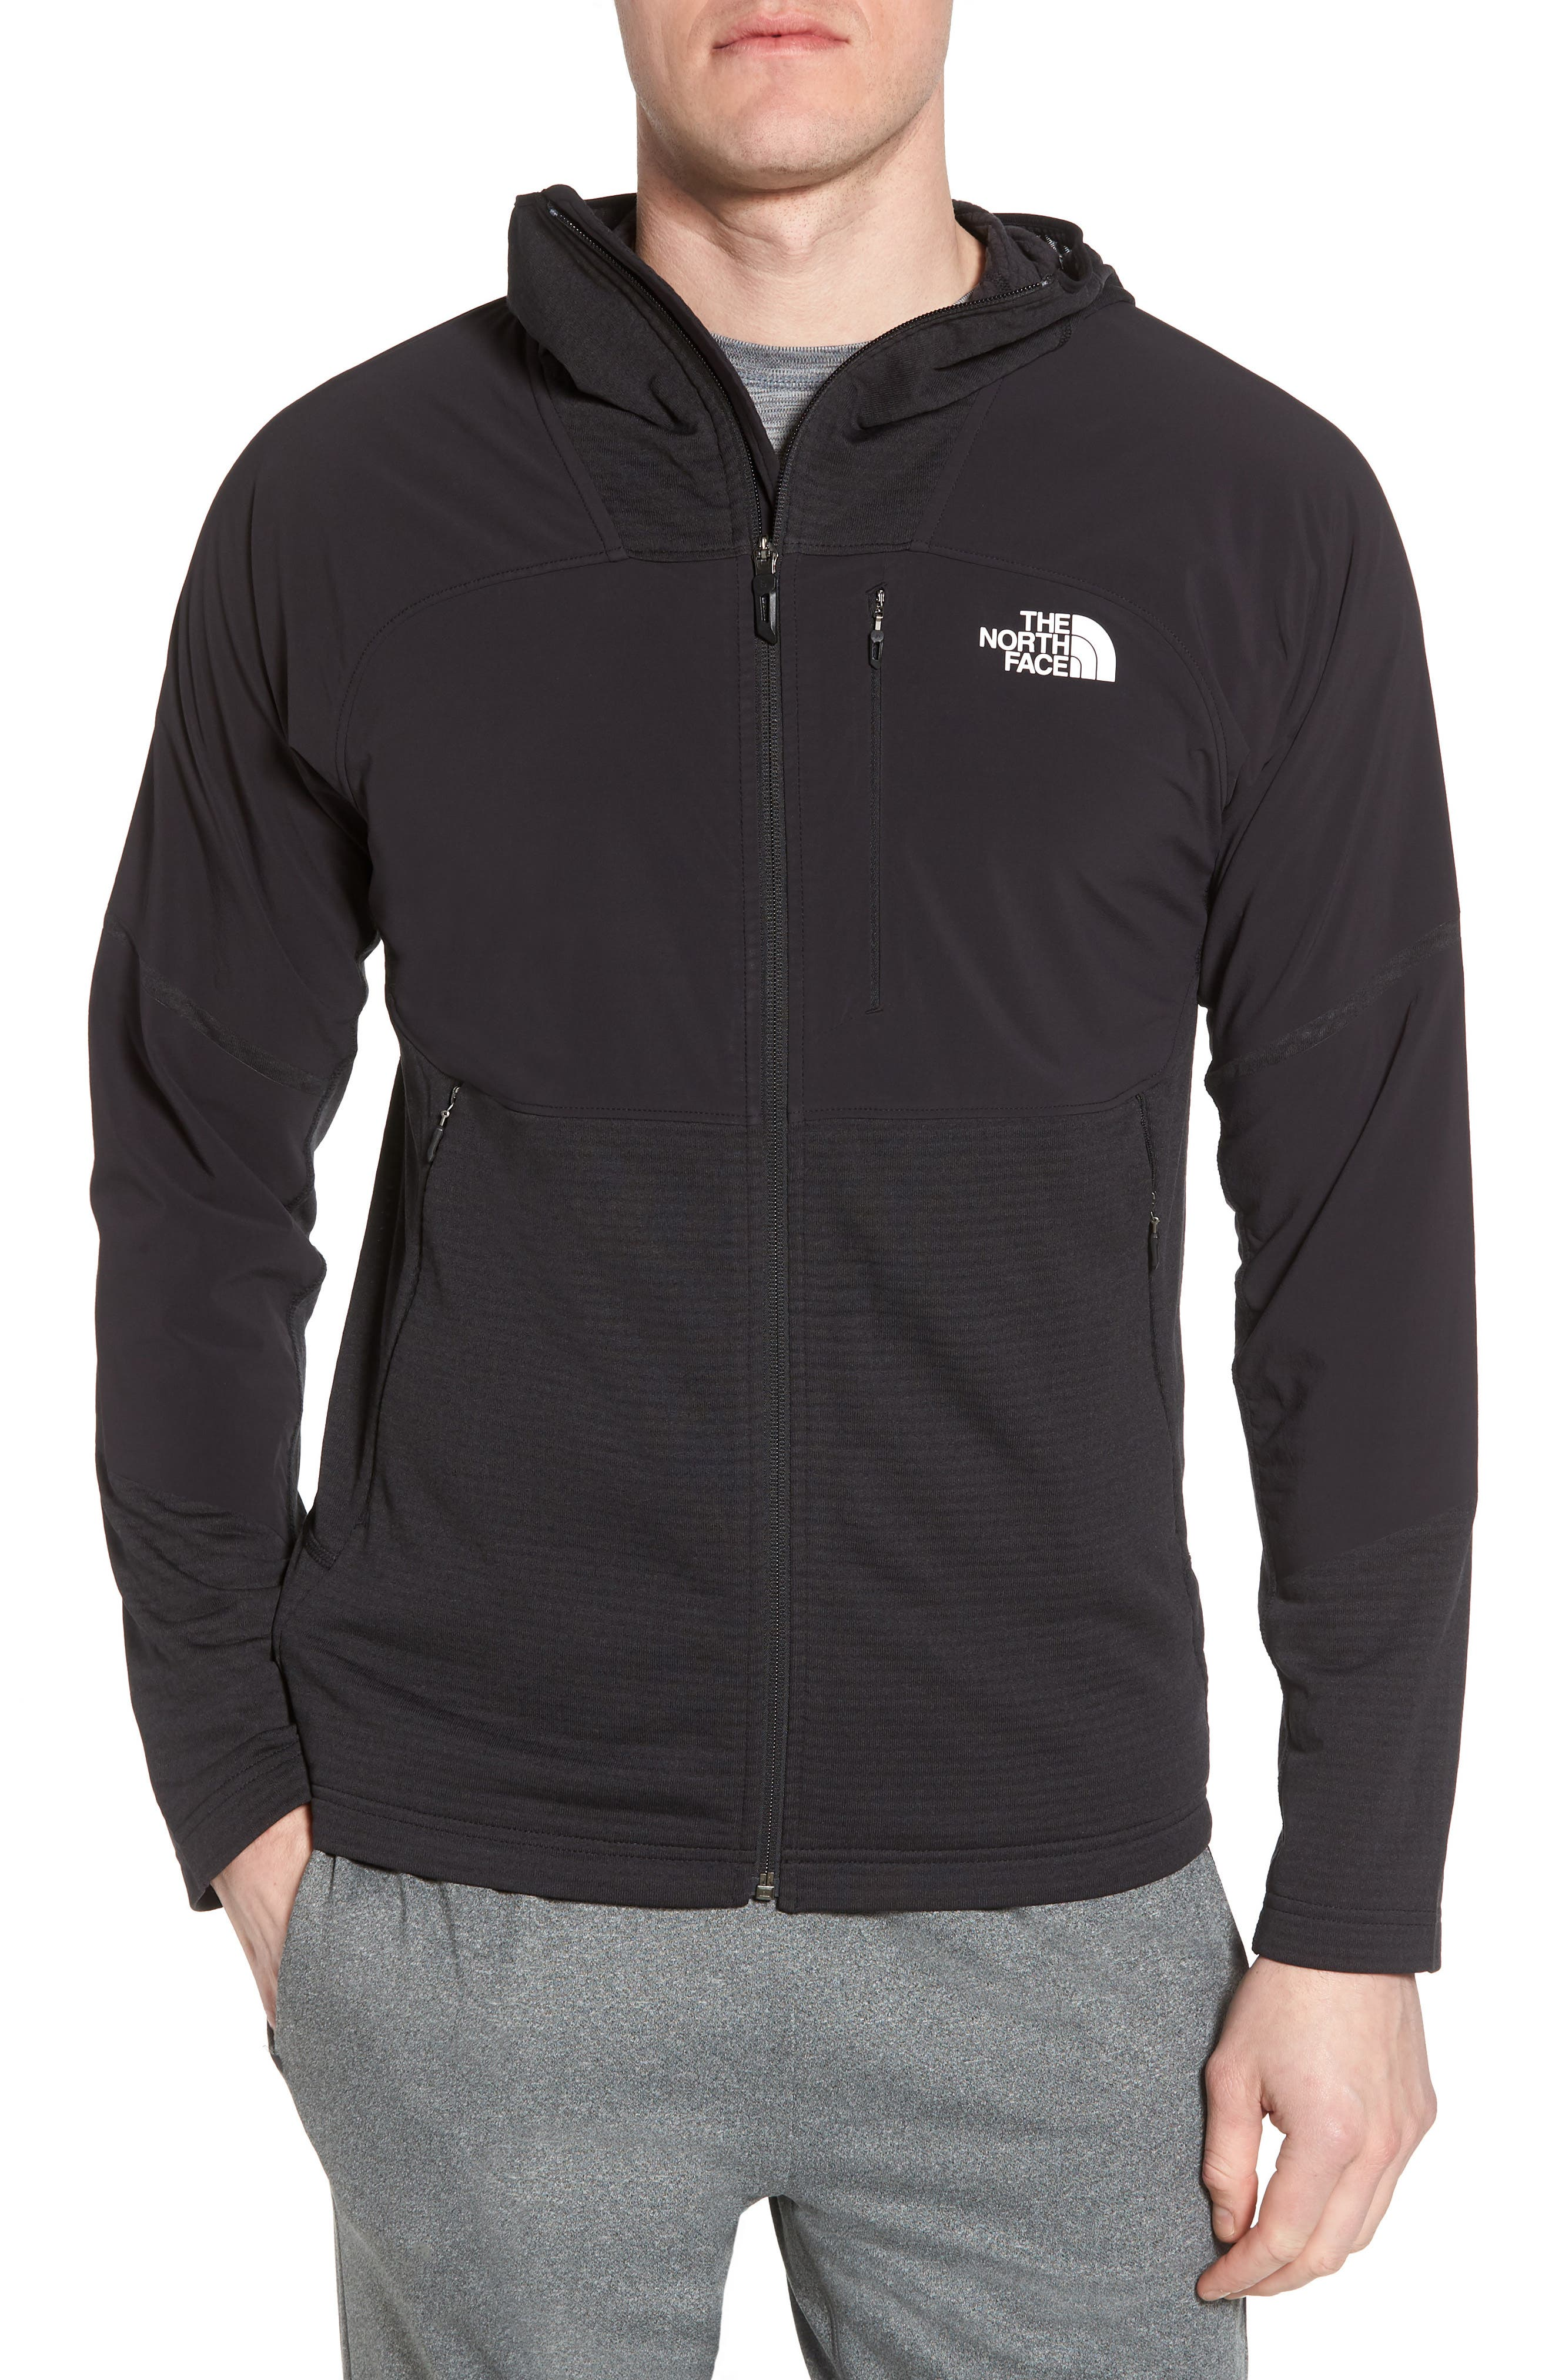 Progressor Power Grid<sup>™</sup> Hooded Fleece Jacket,                             Main thumbnail 1, color,                             001